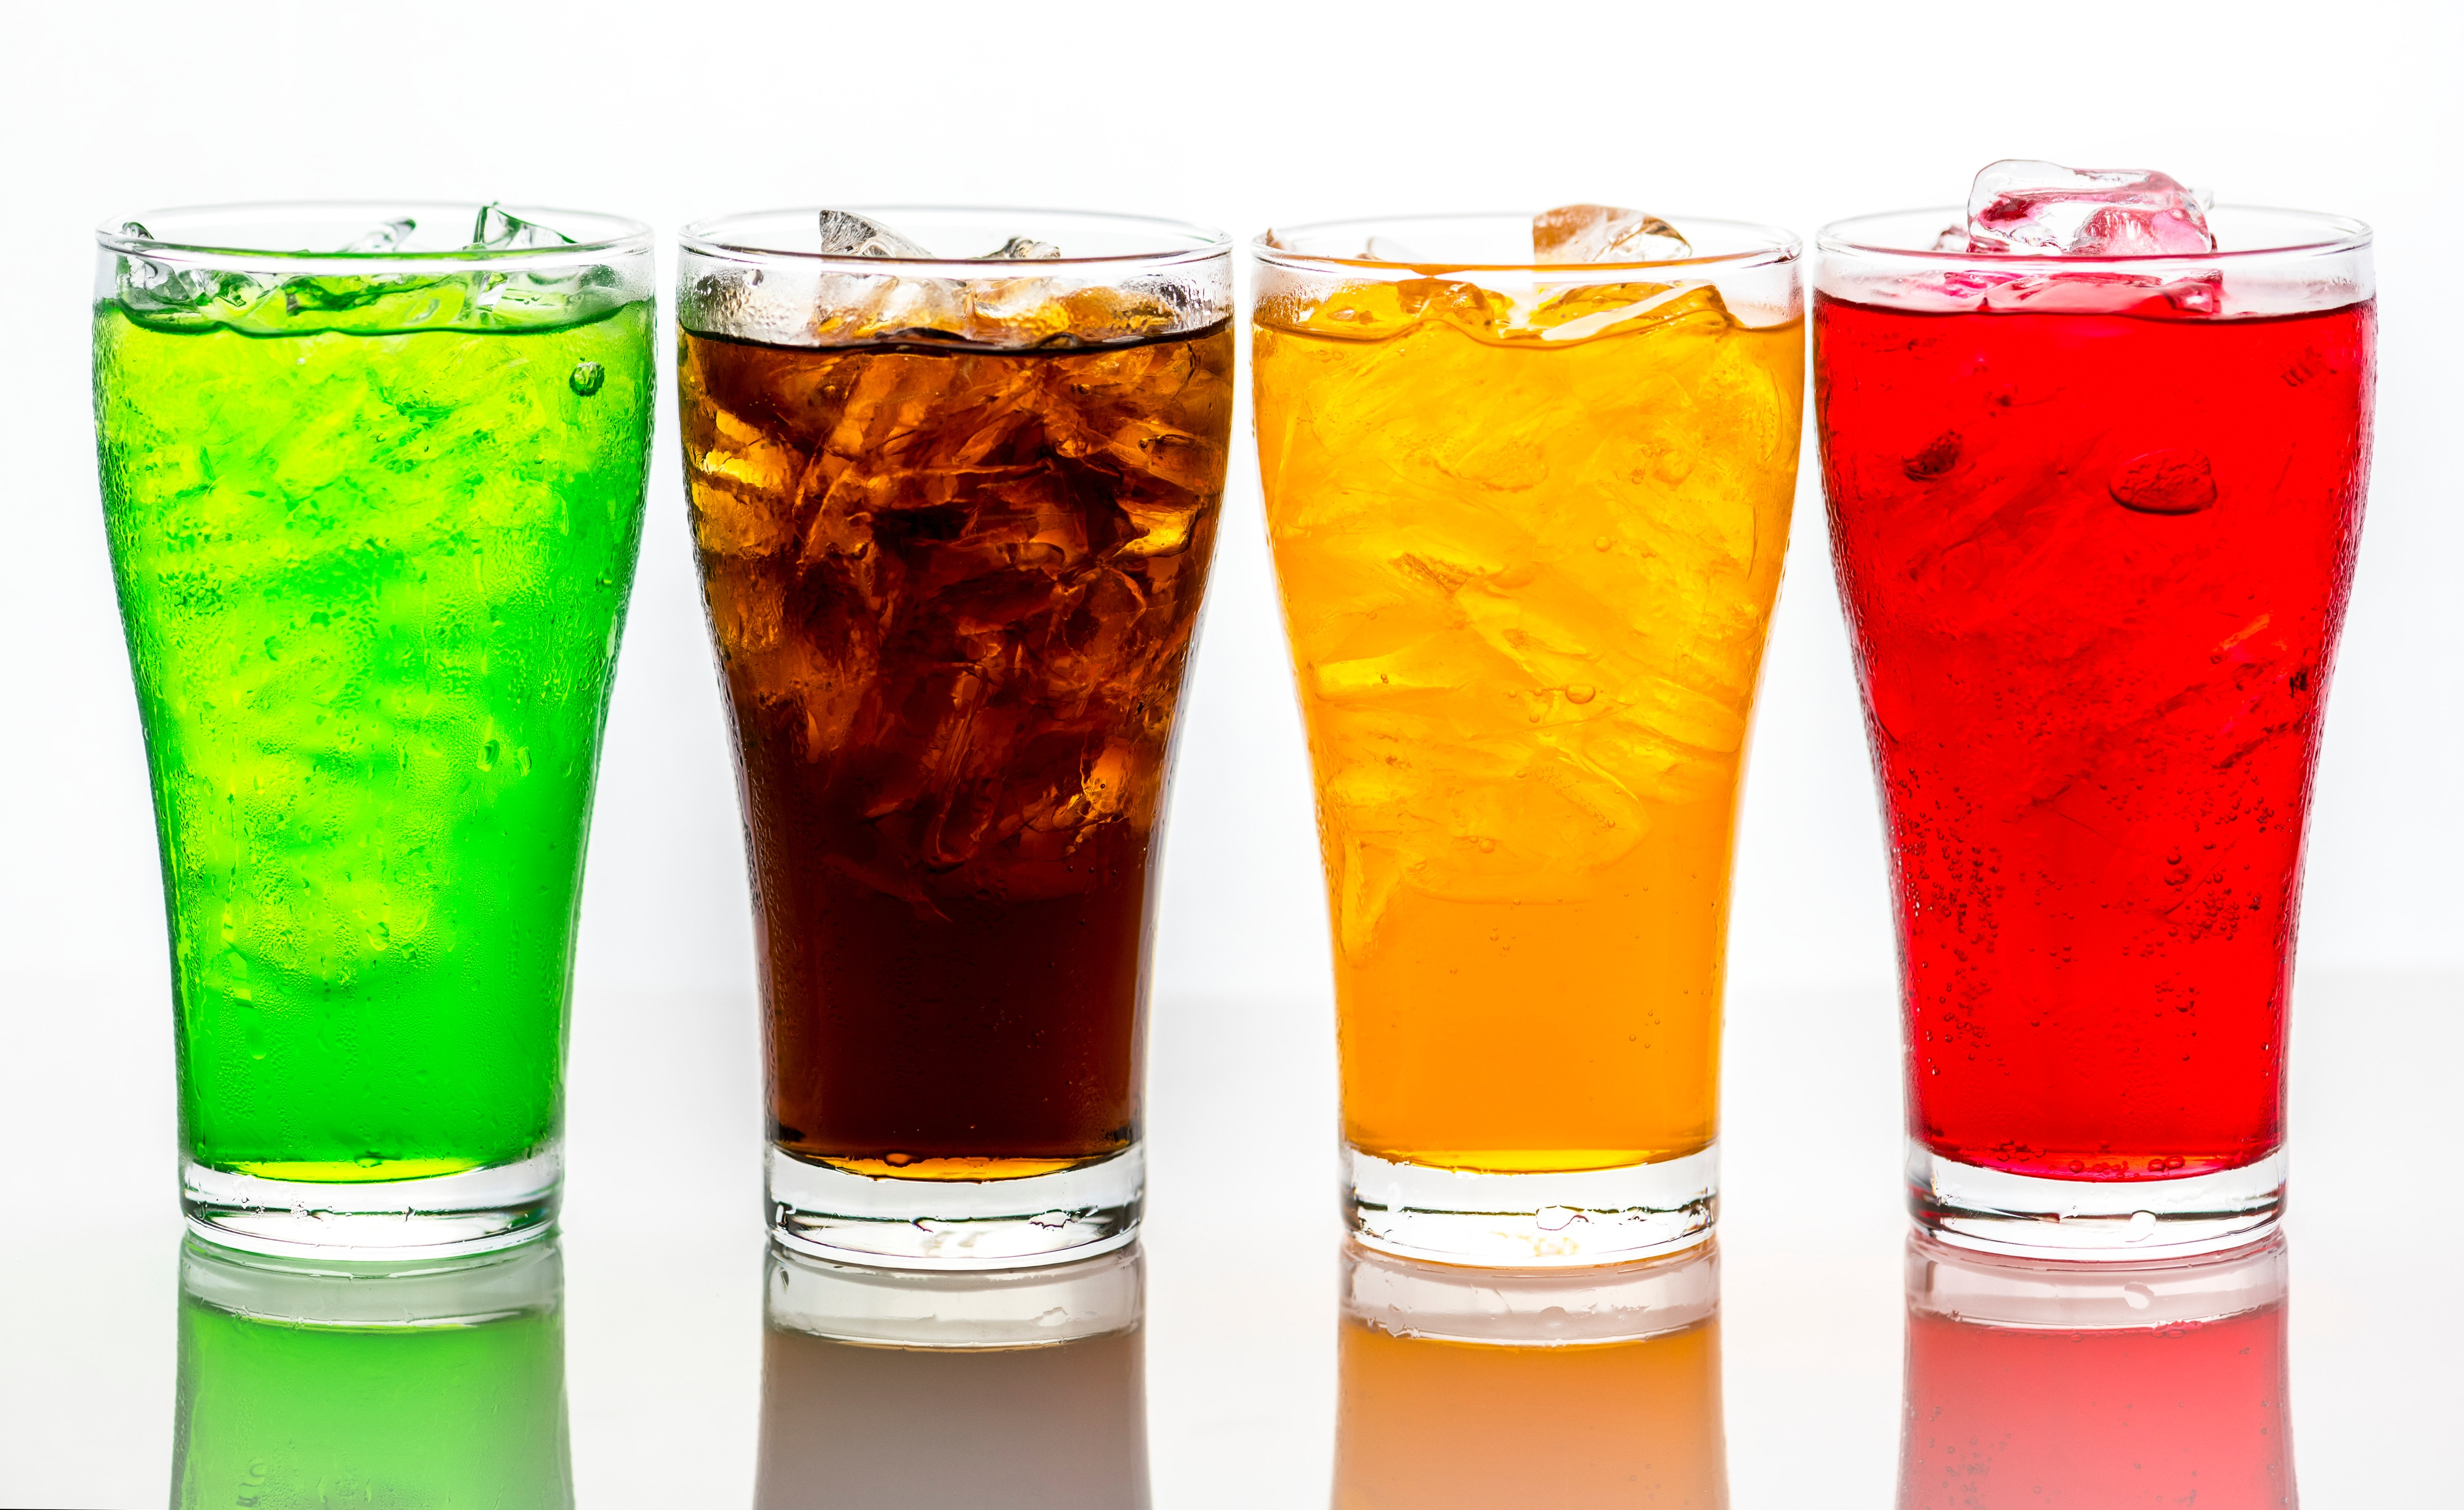 Colorful Carbonated Beverages in Glasses